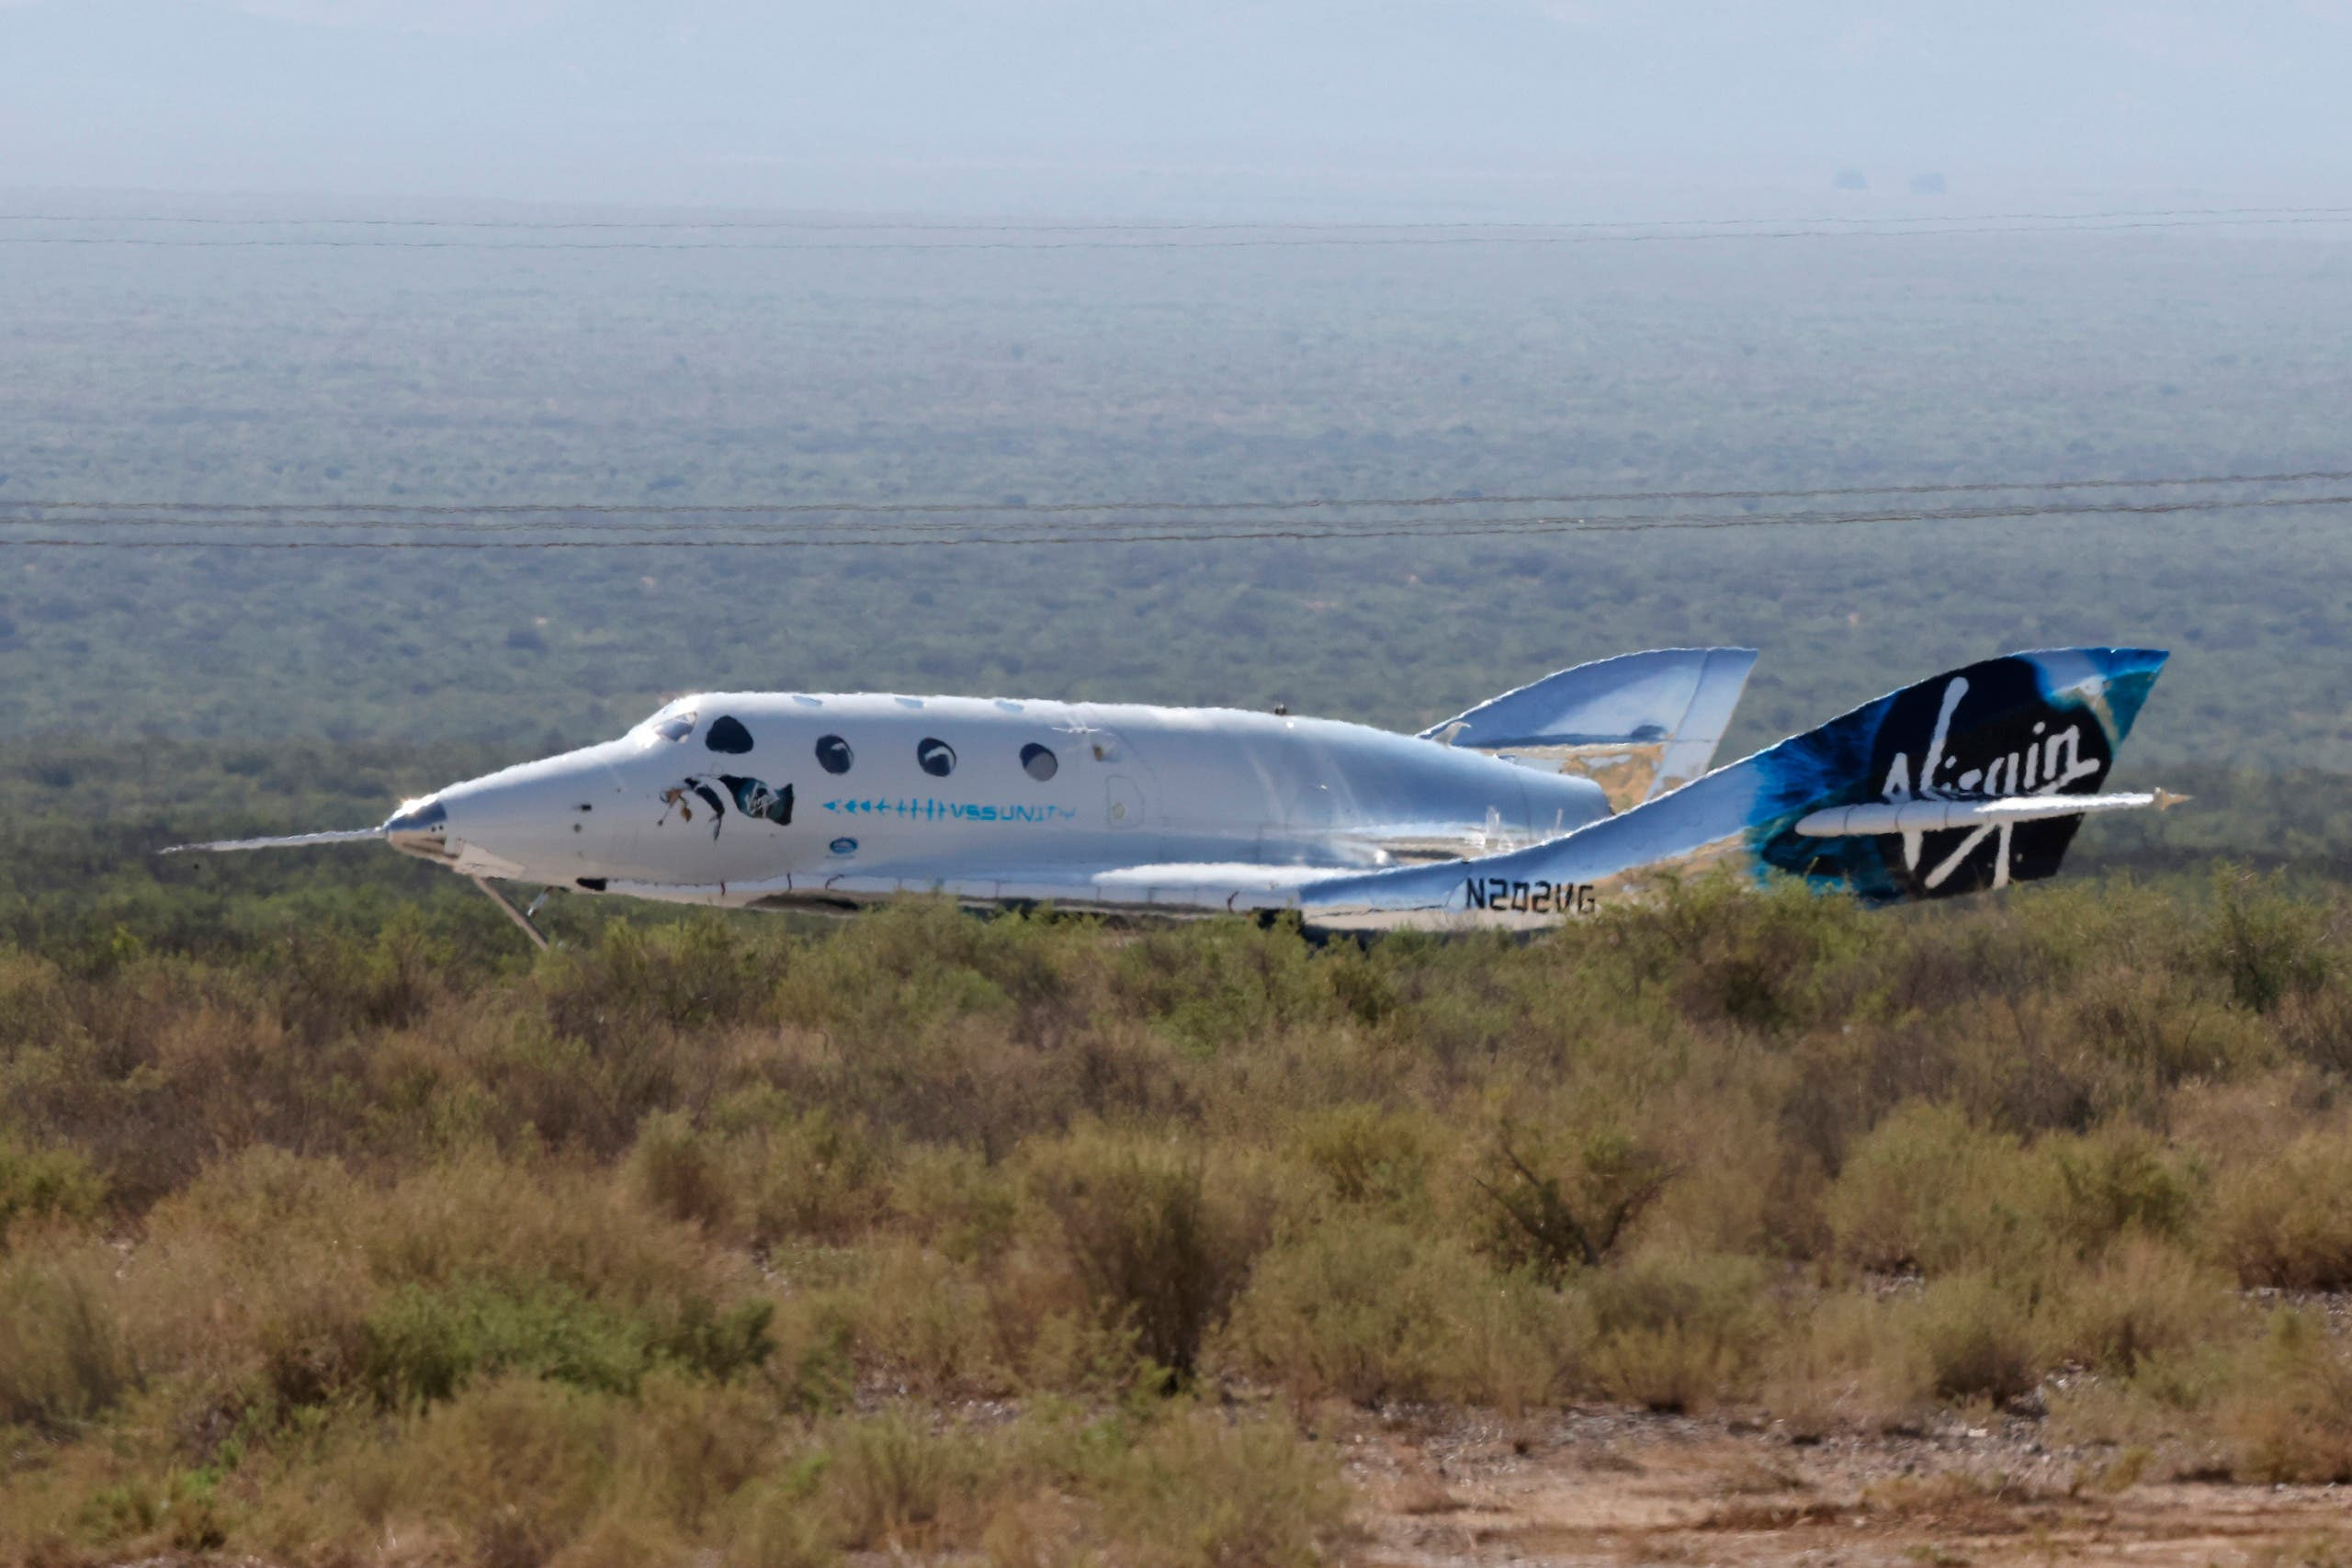 Virgin Galactic's passenger rocket plane VSS Unity, carrying billionaire entrepreneur Richard Branson and his crew, lands after reaching the edge of space above Spaceport America near Truth or Consequences, New Mexico, US, July 11, 2021. (Reuters)